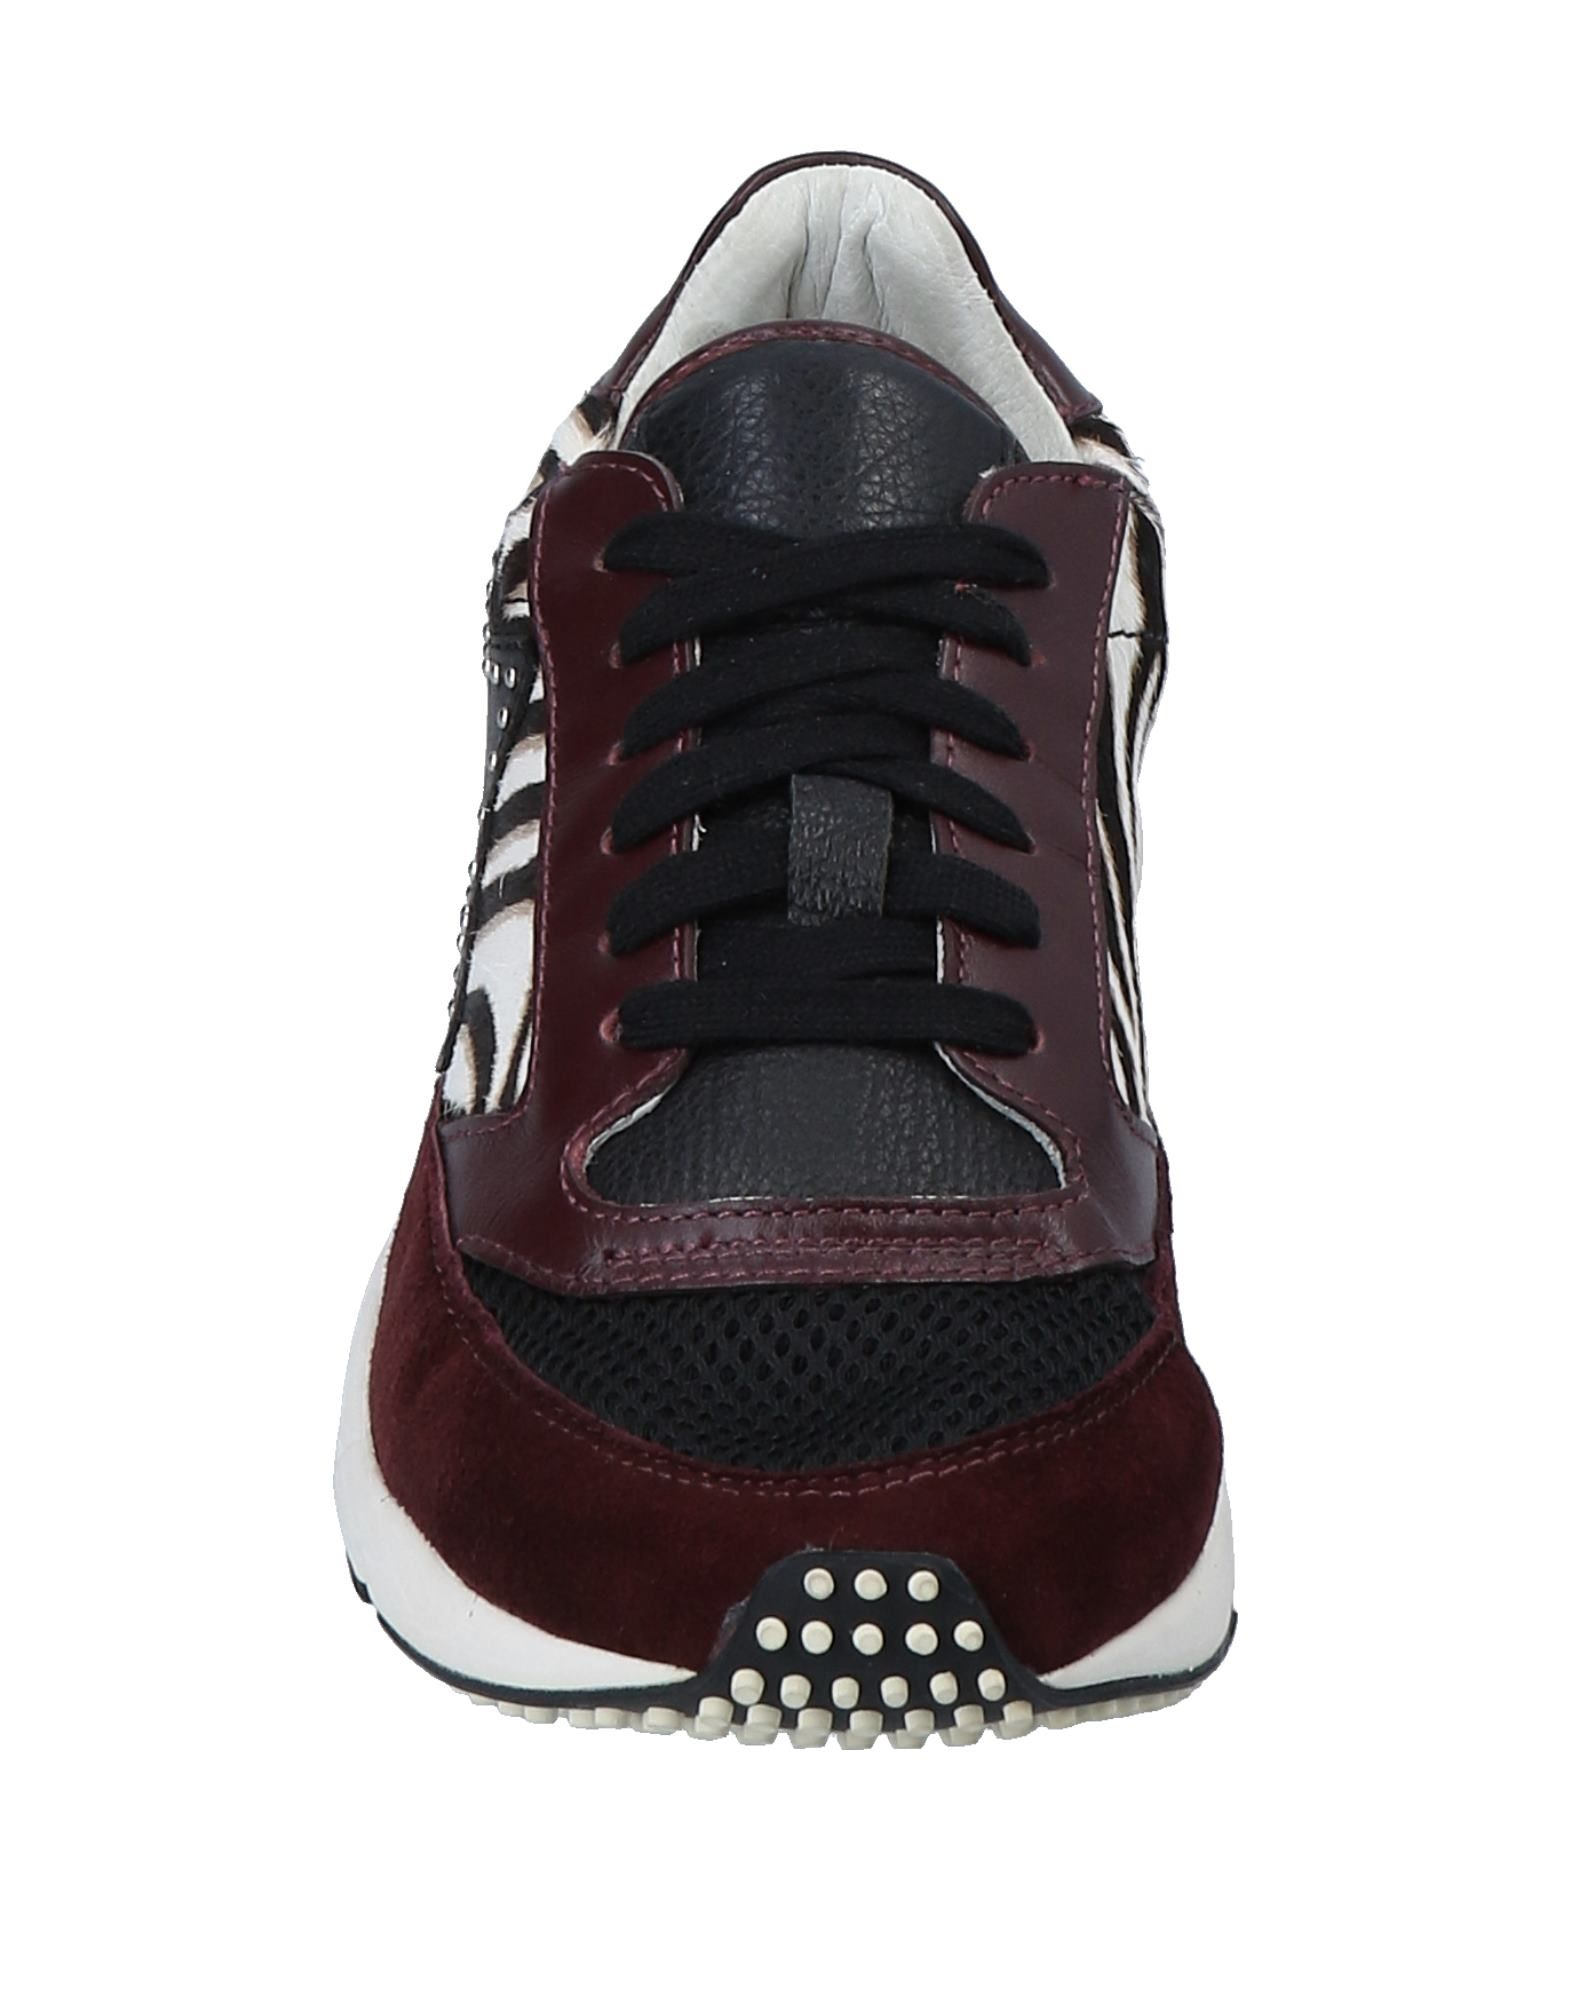 Stilvolle billige Sneakers Schuhe Lola Cruz Sneakers billige Damen  11553229TU c22876